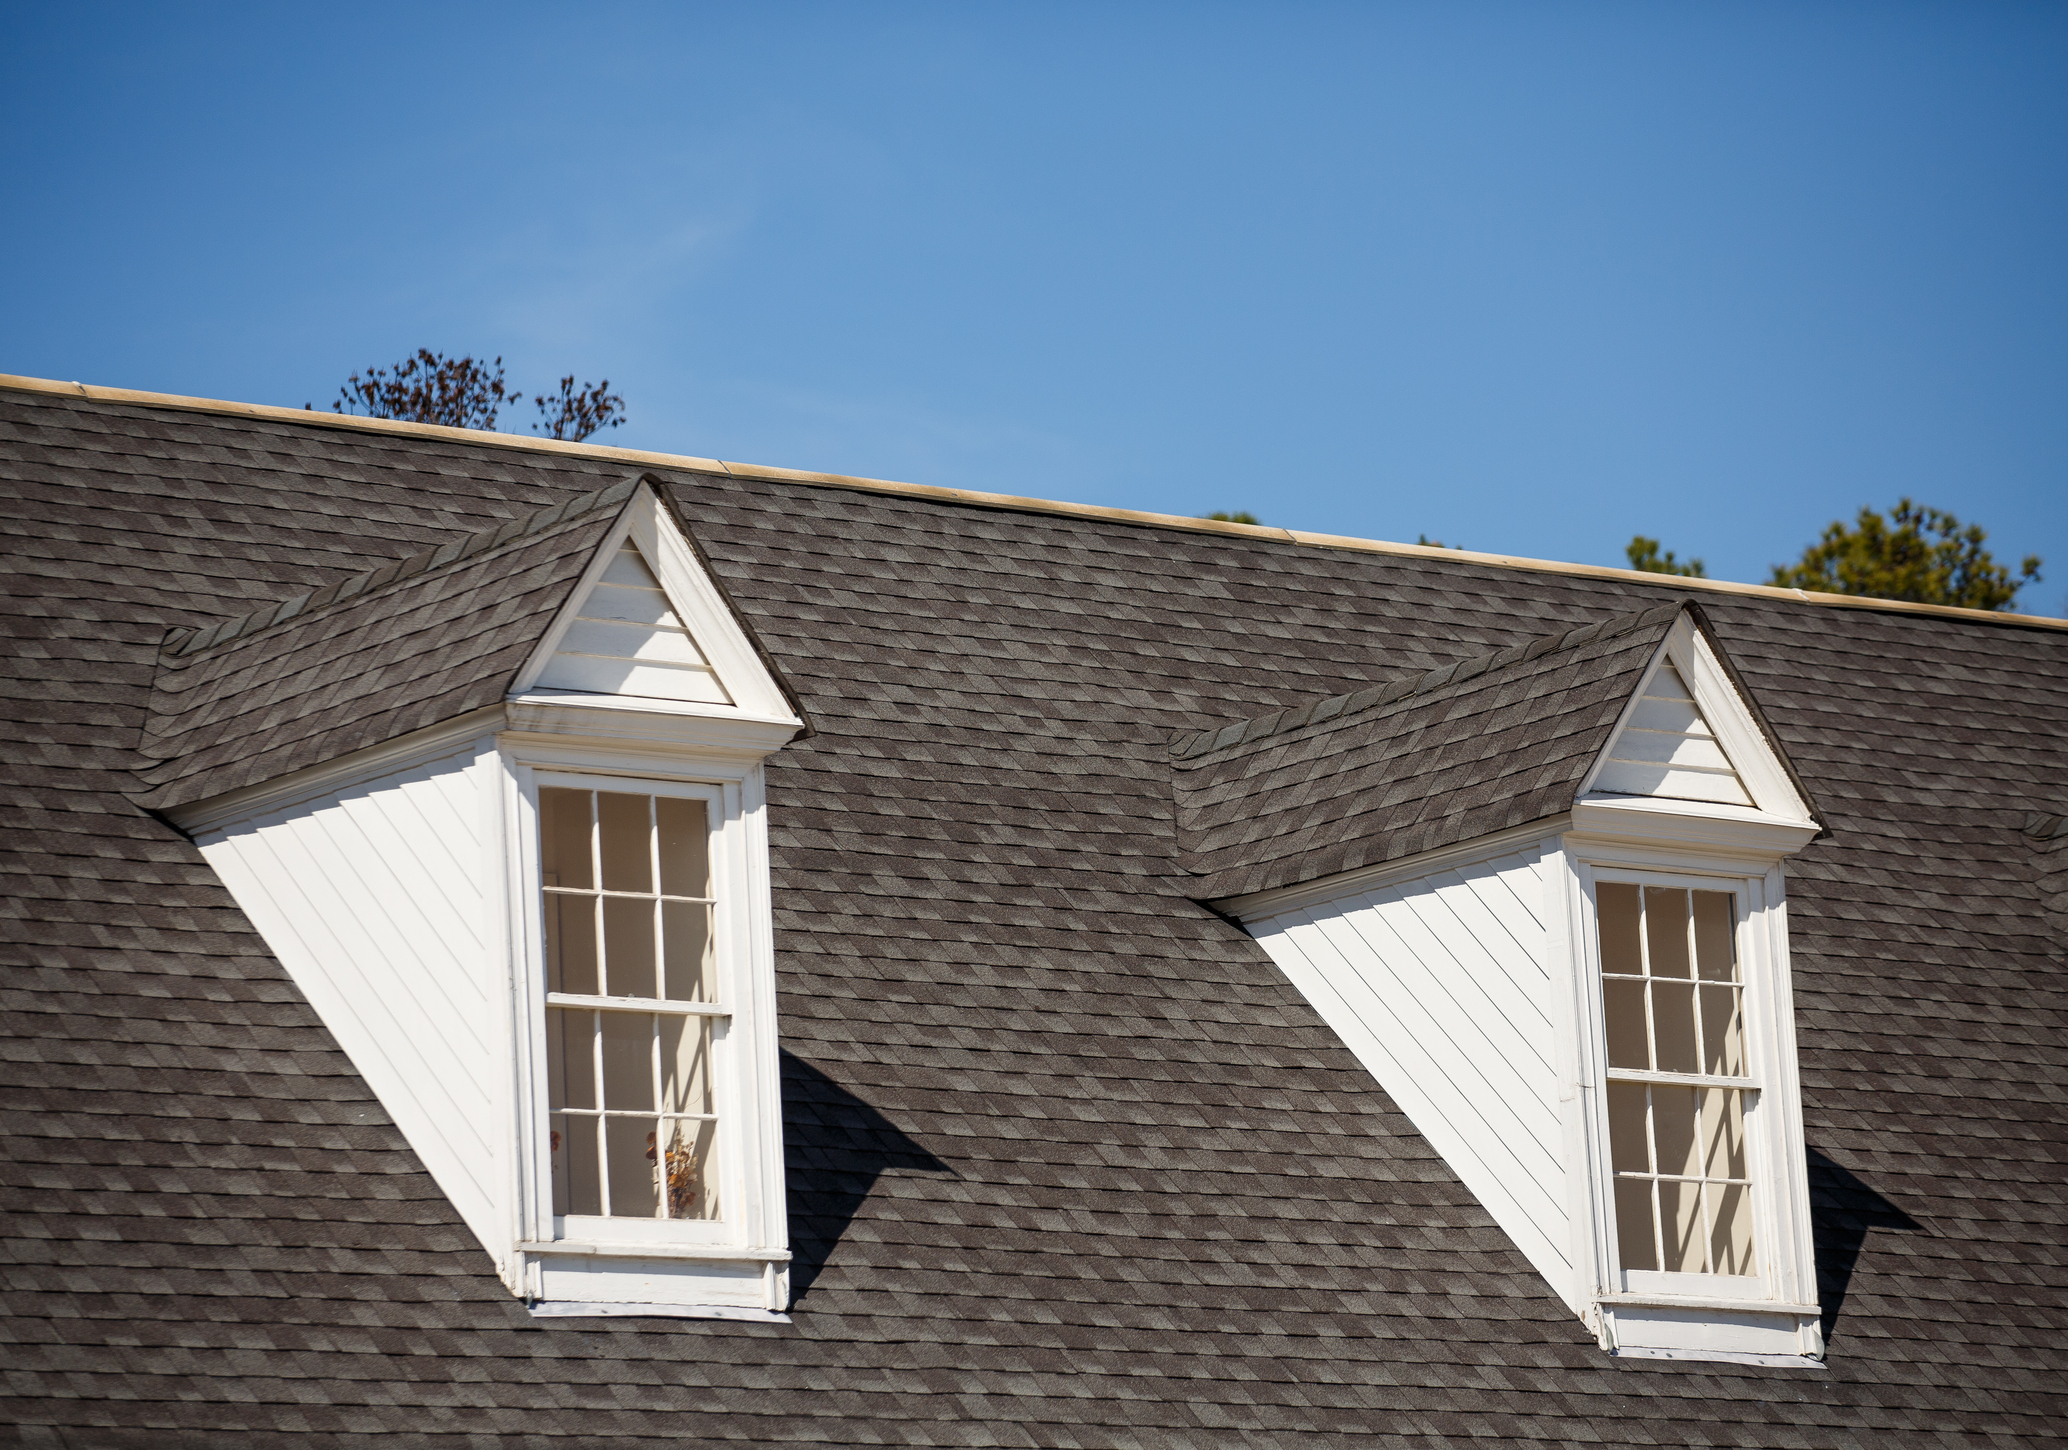 New Roof Waterbury Ct Beautiful Roof For Your Home At Aws